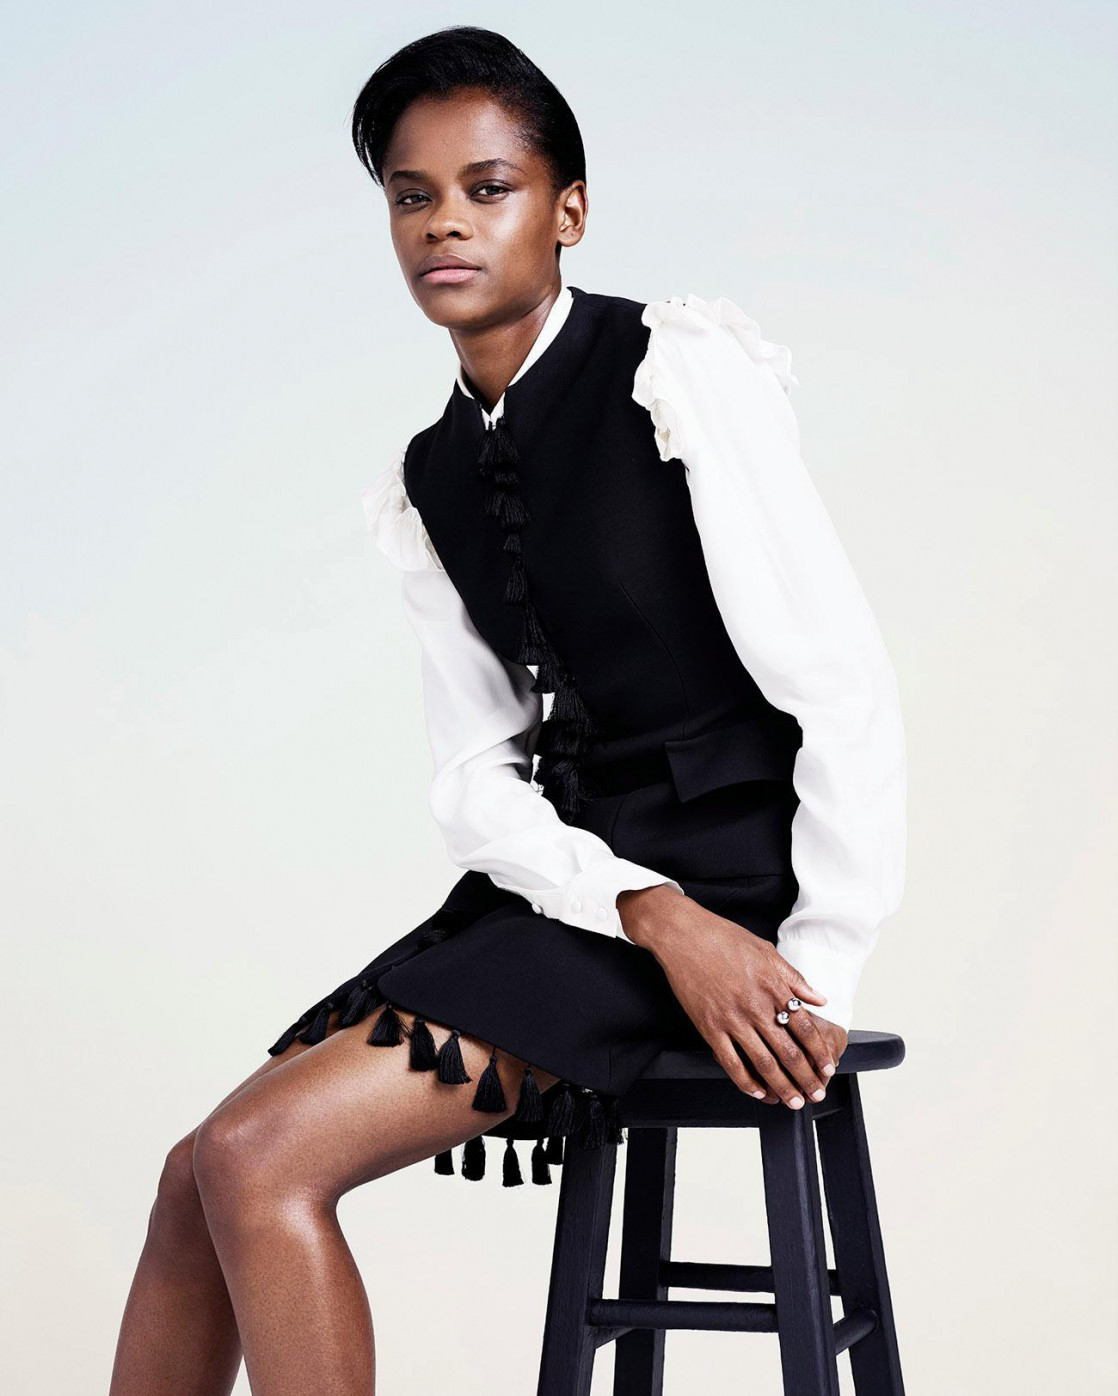 32 Hot Pictures Of Letitia Wright – Shuri From Black Panther ...